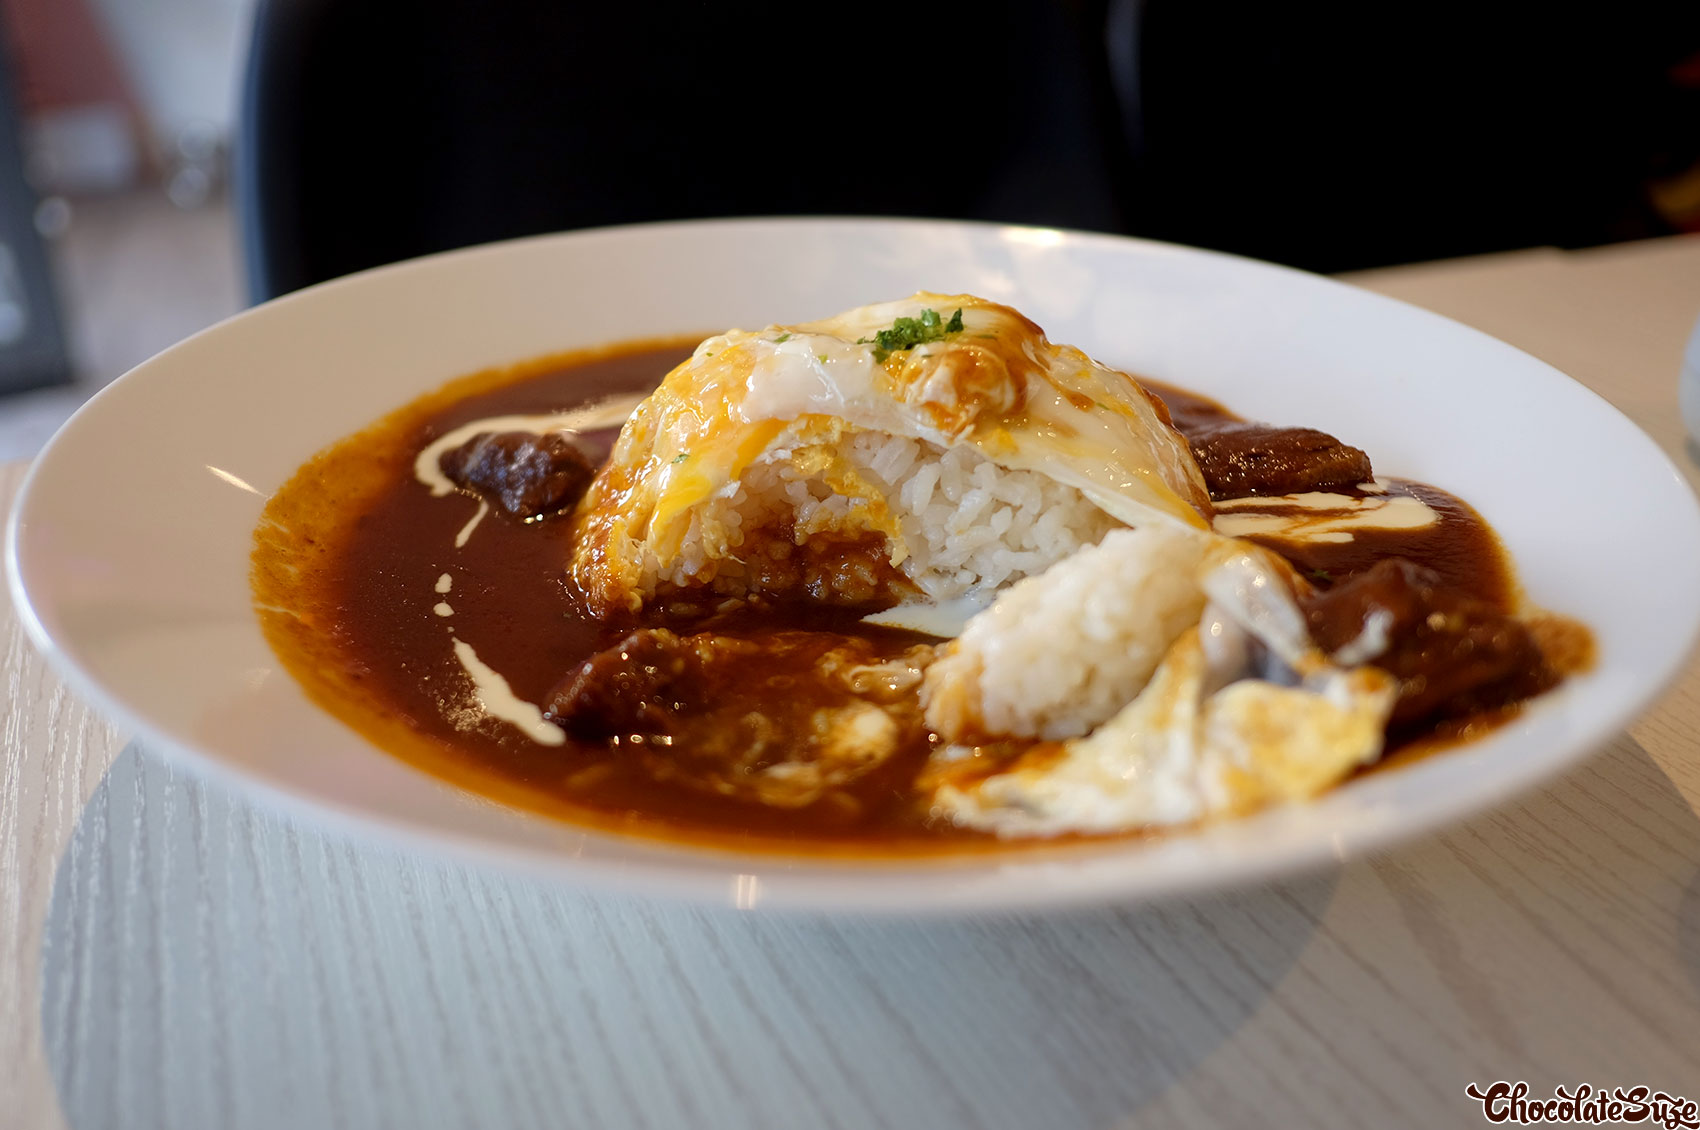 Demi glace omurice at Moka, Beaconsfield